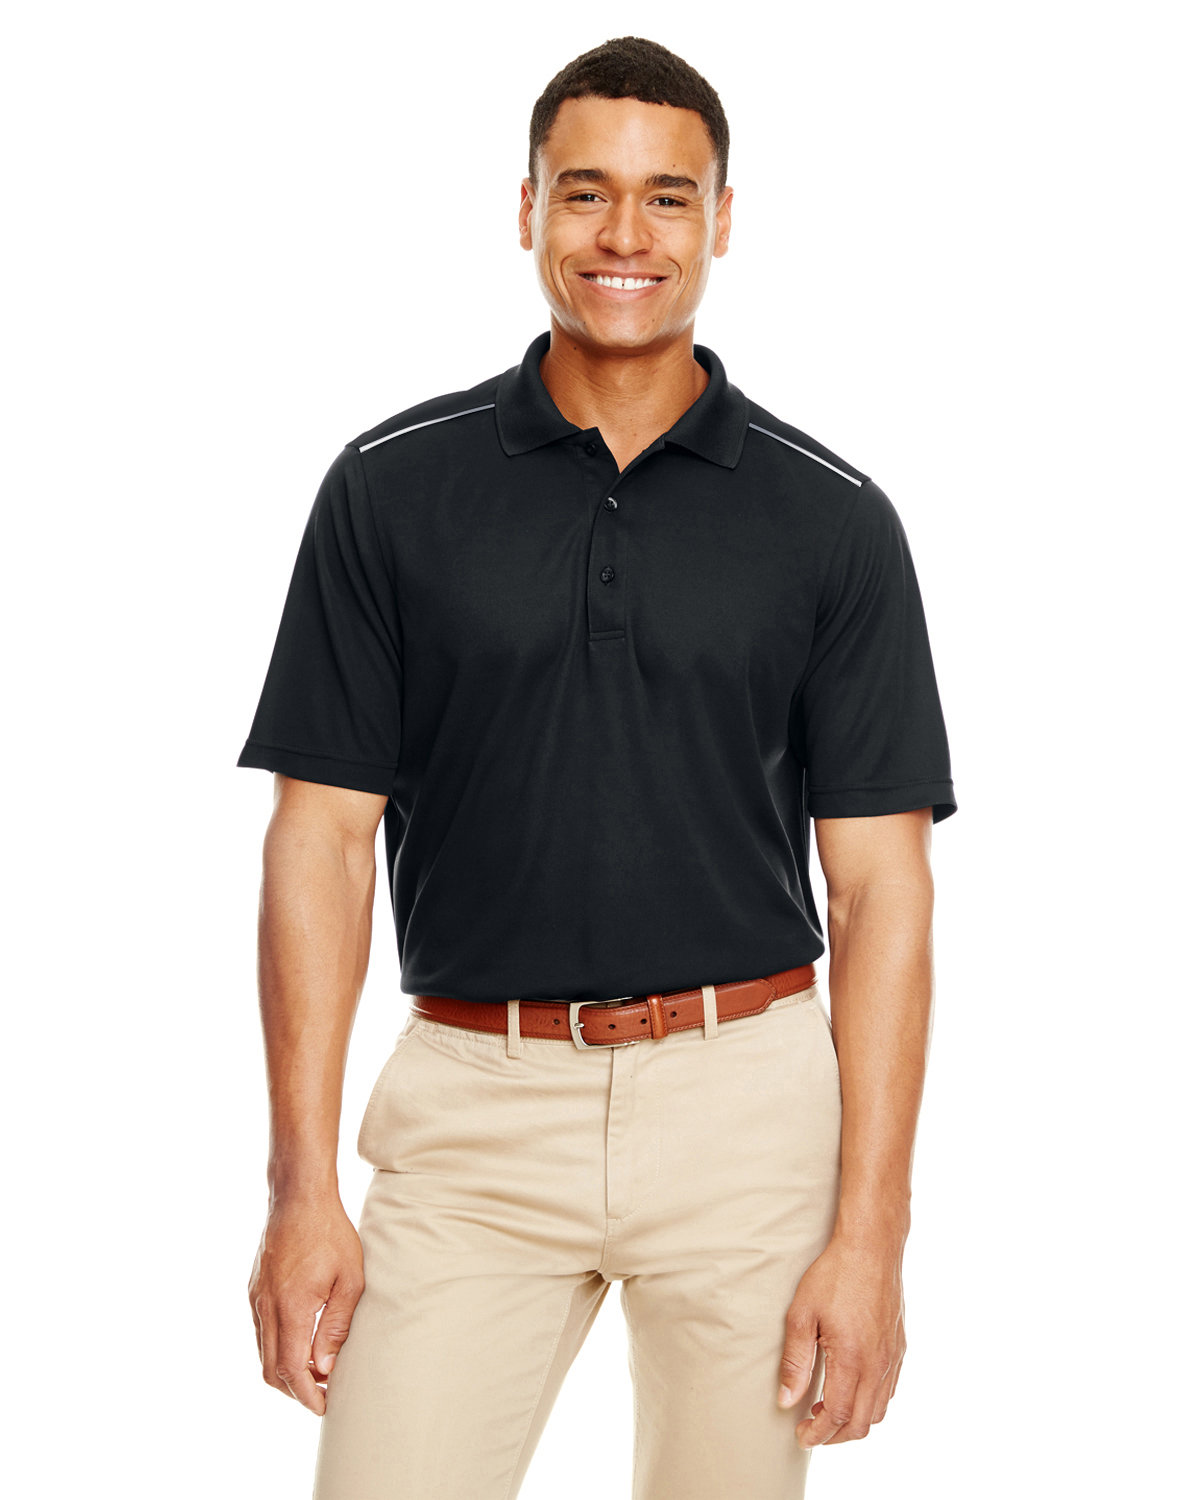 Core 365 Men's Radiant Performance Piqué Polo withReflective Piping BLACK